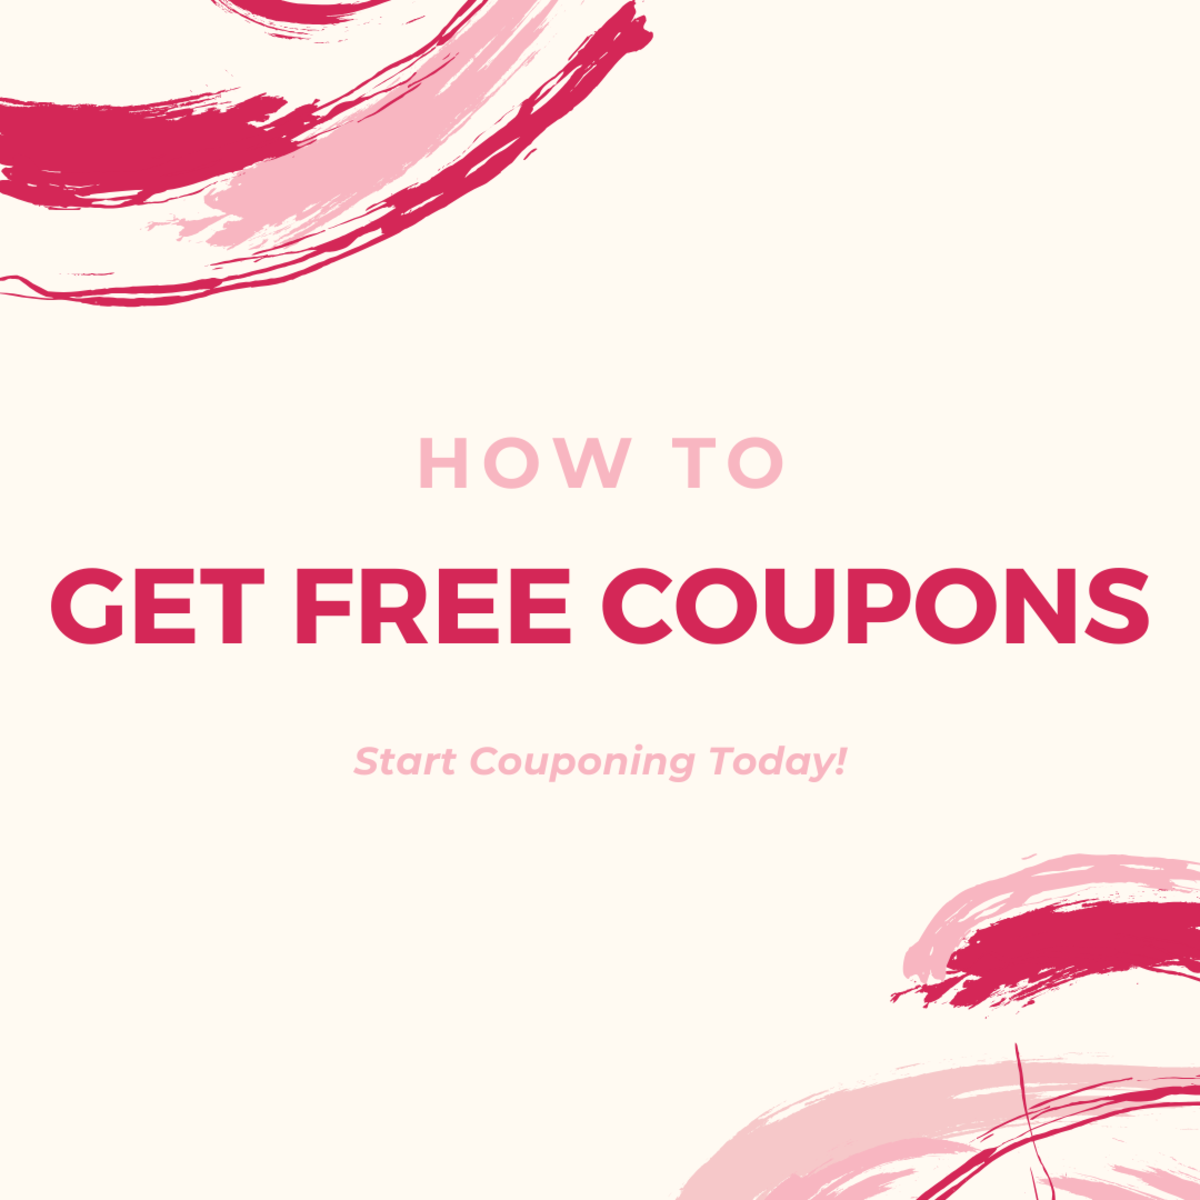 Learn how to get free coupons in the mail so you can start couponing today!